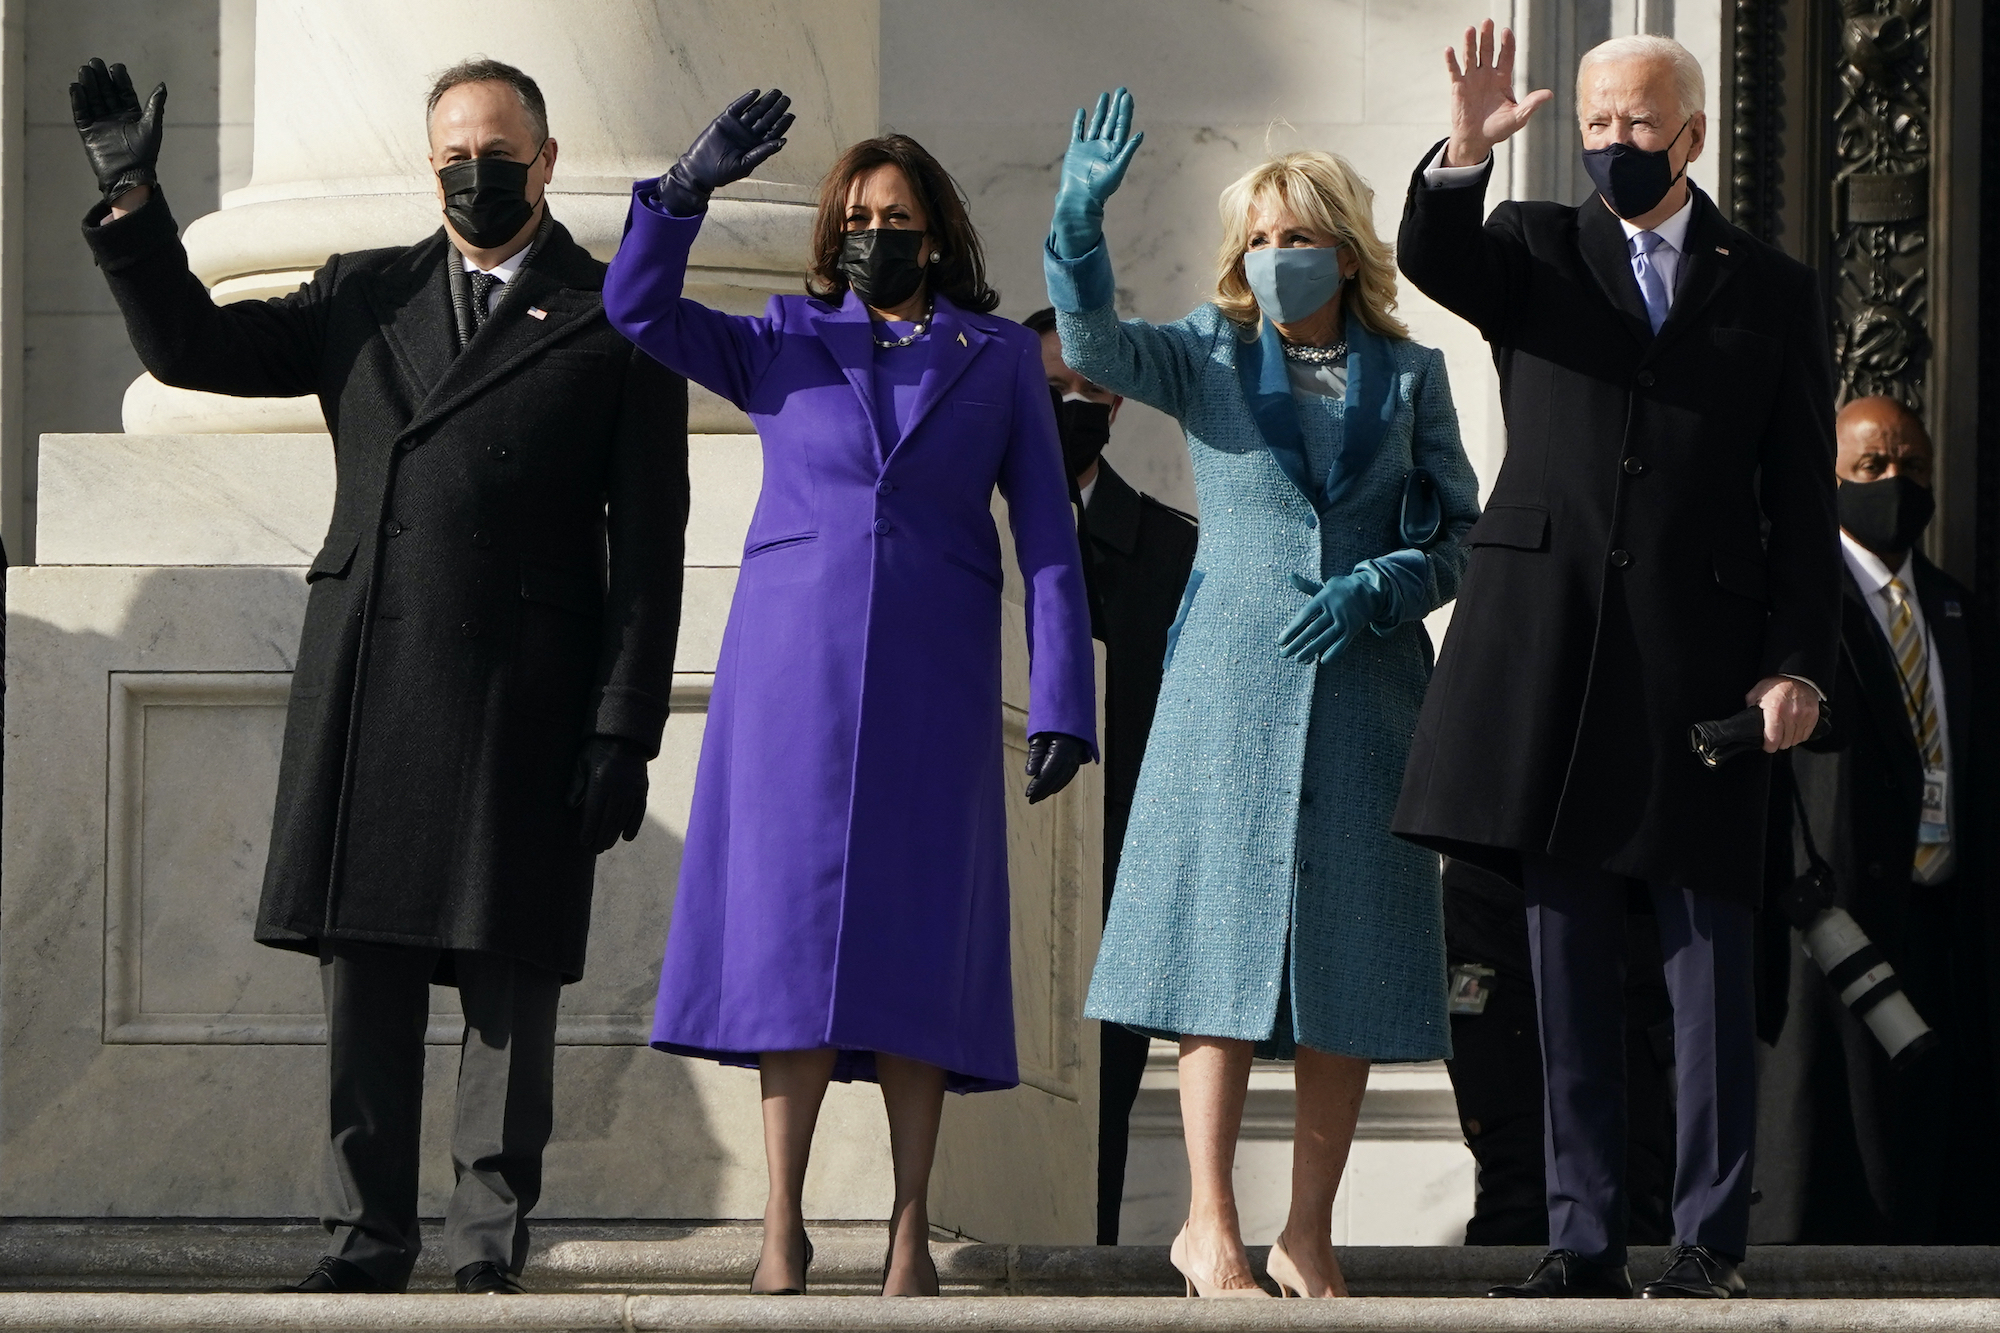 President-elect Joe Biden, his wife Jill Biden and Vice President-elect Kamala Harris and her husband Doug Emhoff arrive at the steps of the U.S. Capitol